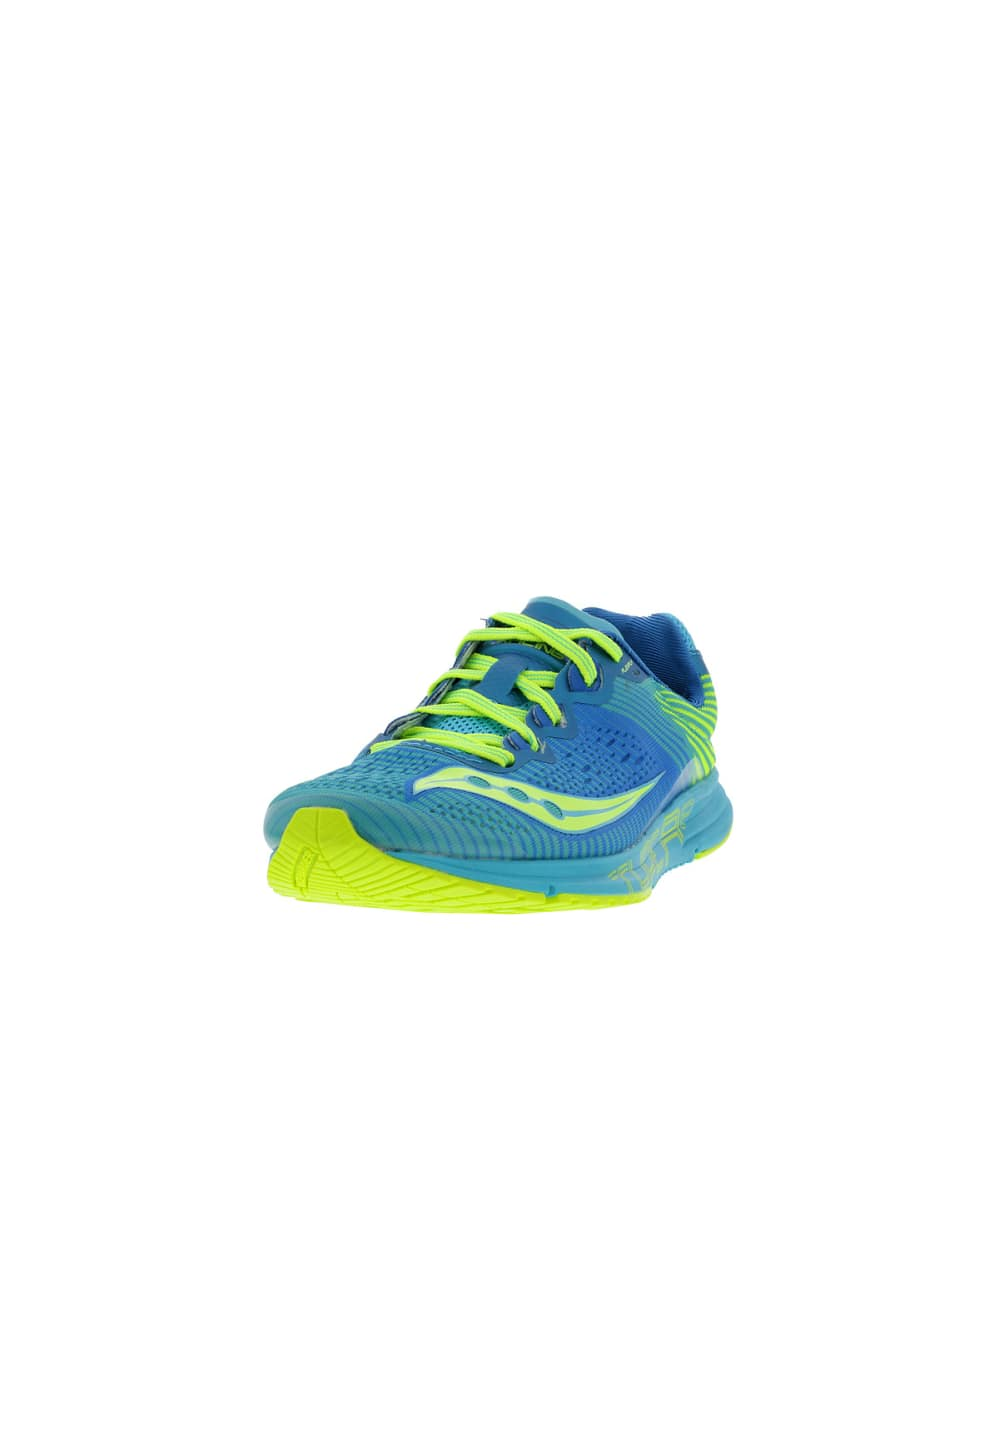 Chaussures Bleu Type Running A8 Pour Saucony Femme CBoxrde